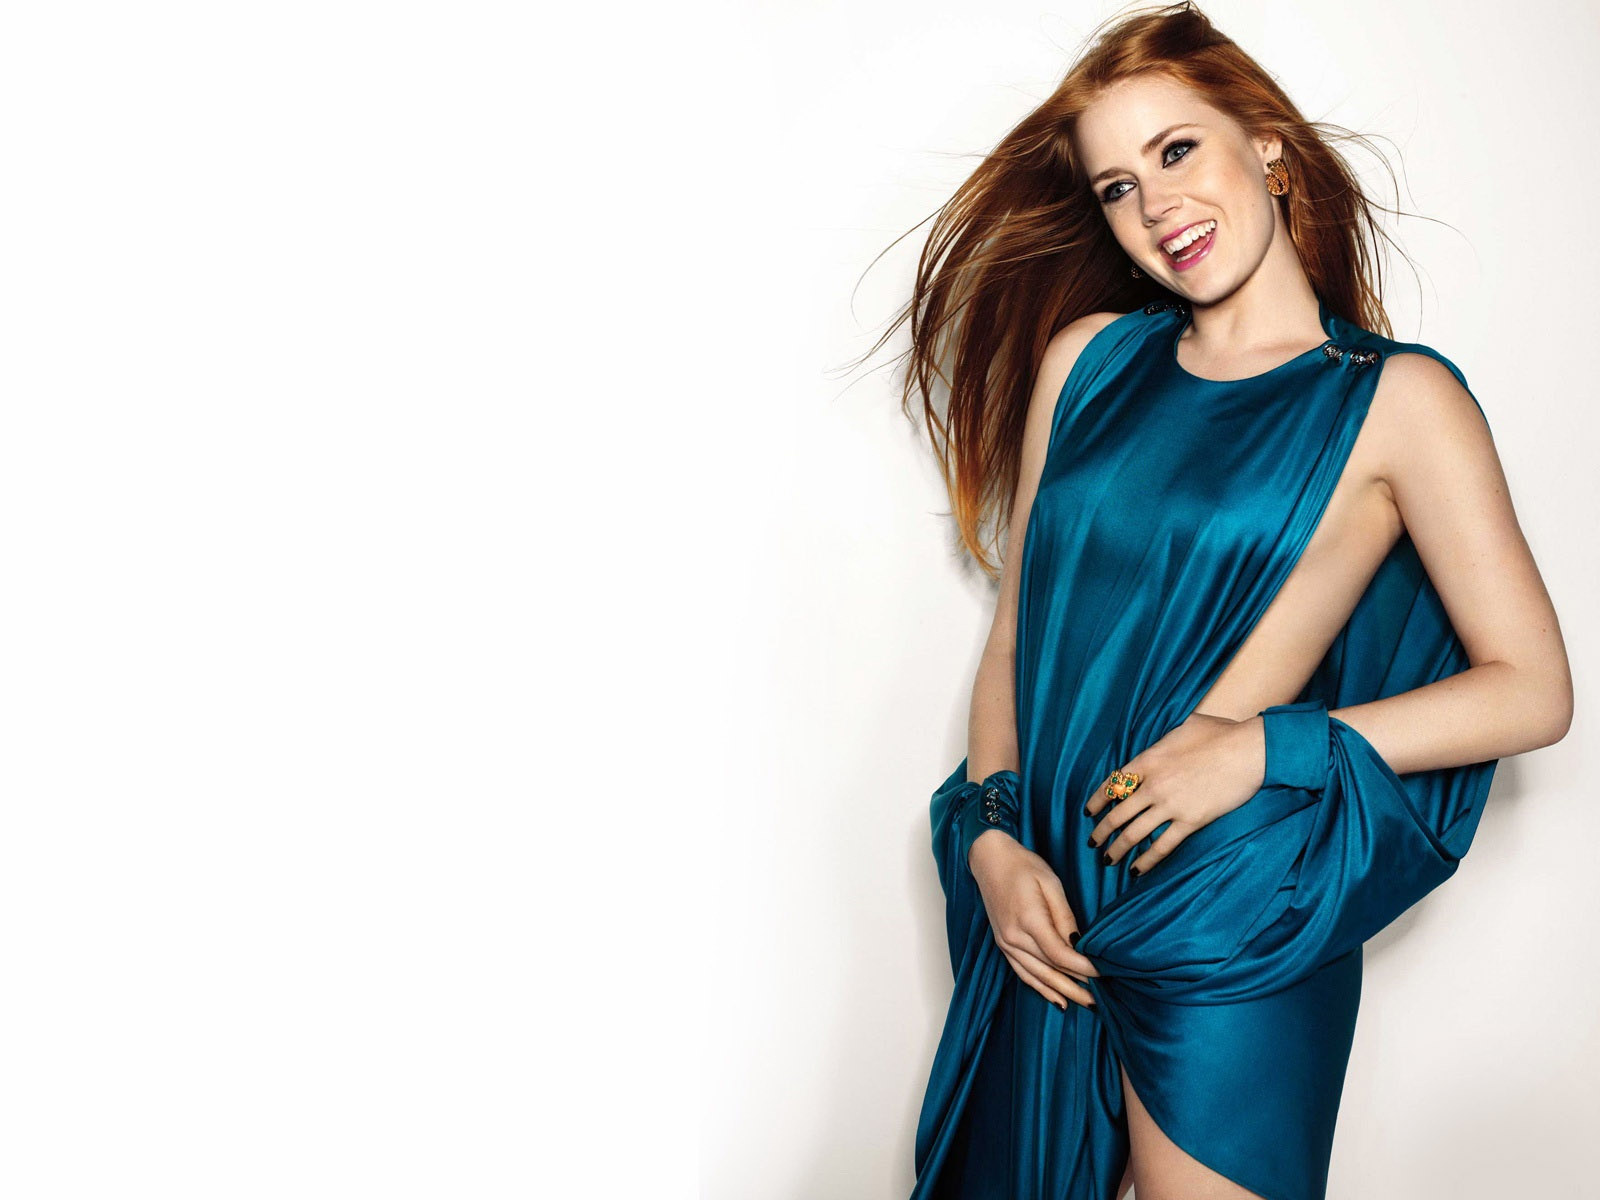 amy adams wallpapers hd A2